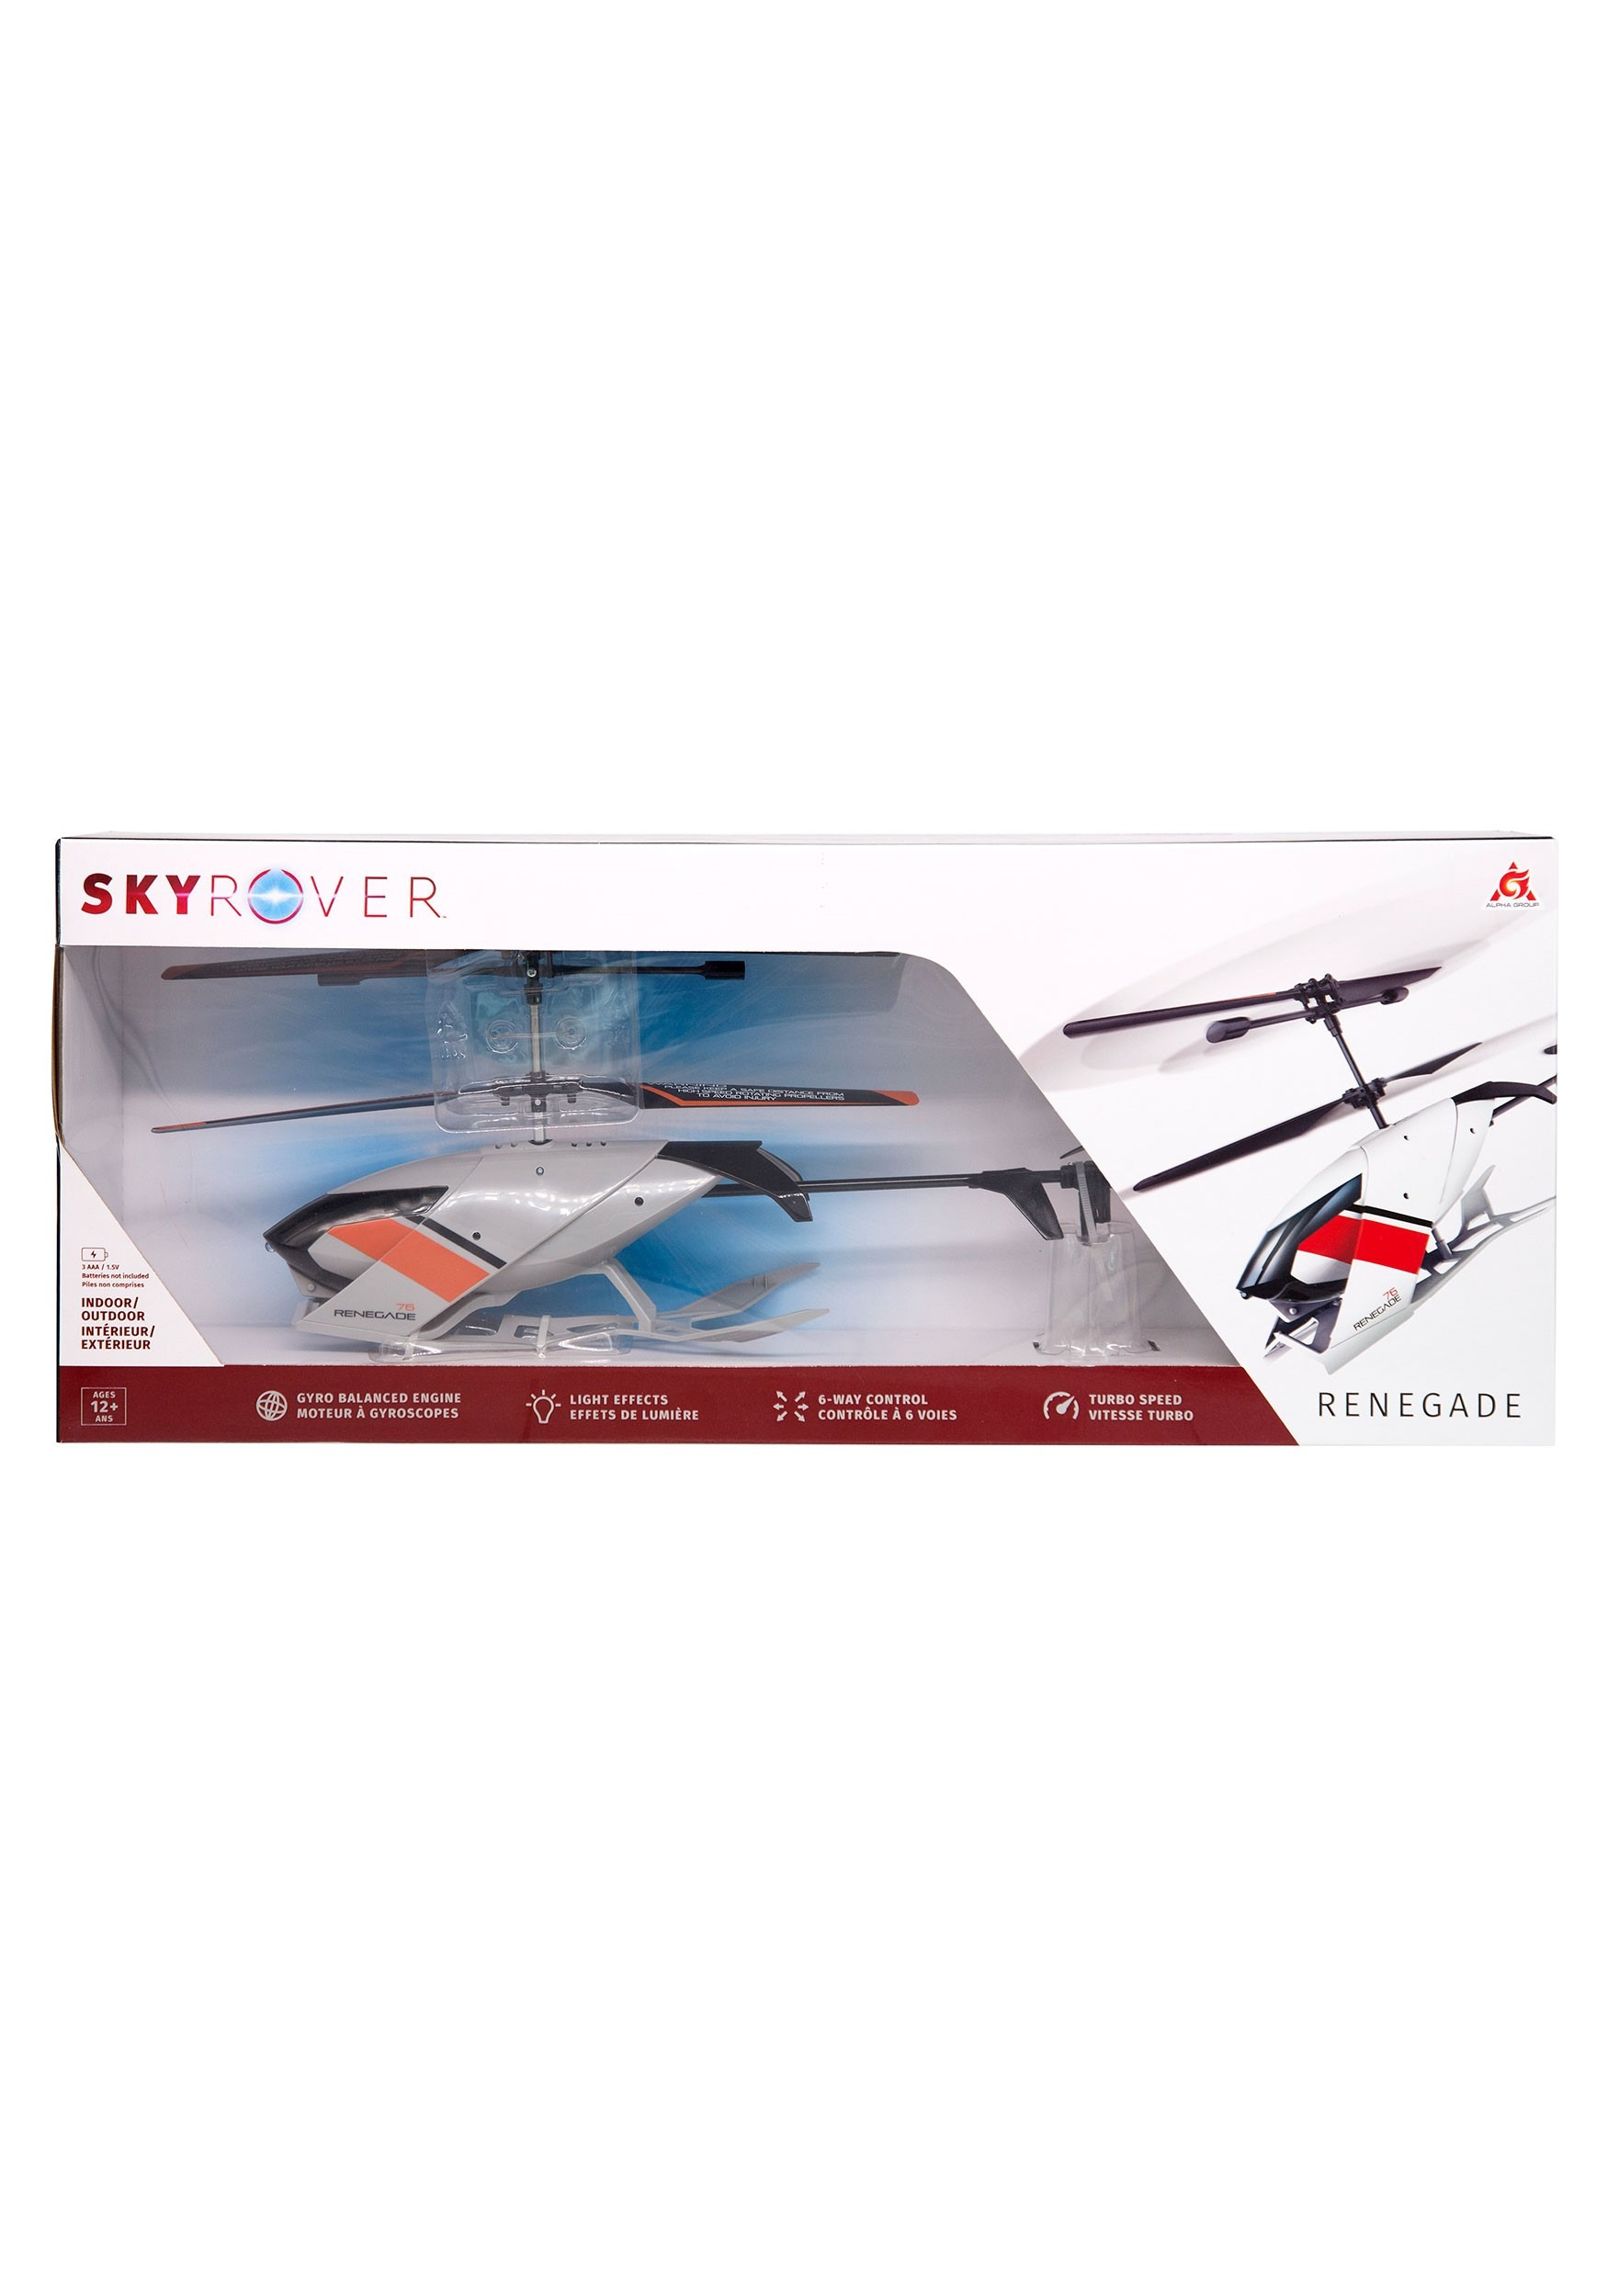 Helicopter_Drone_Sky_Rover_Renegade_RC